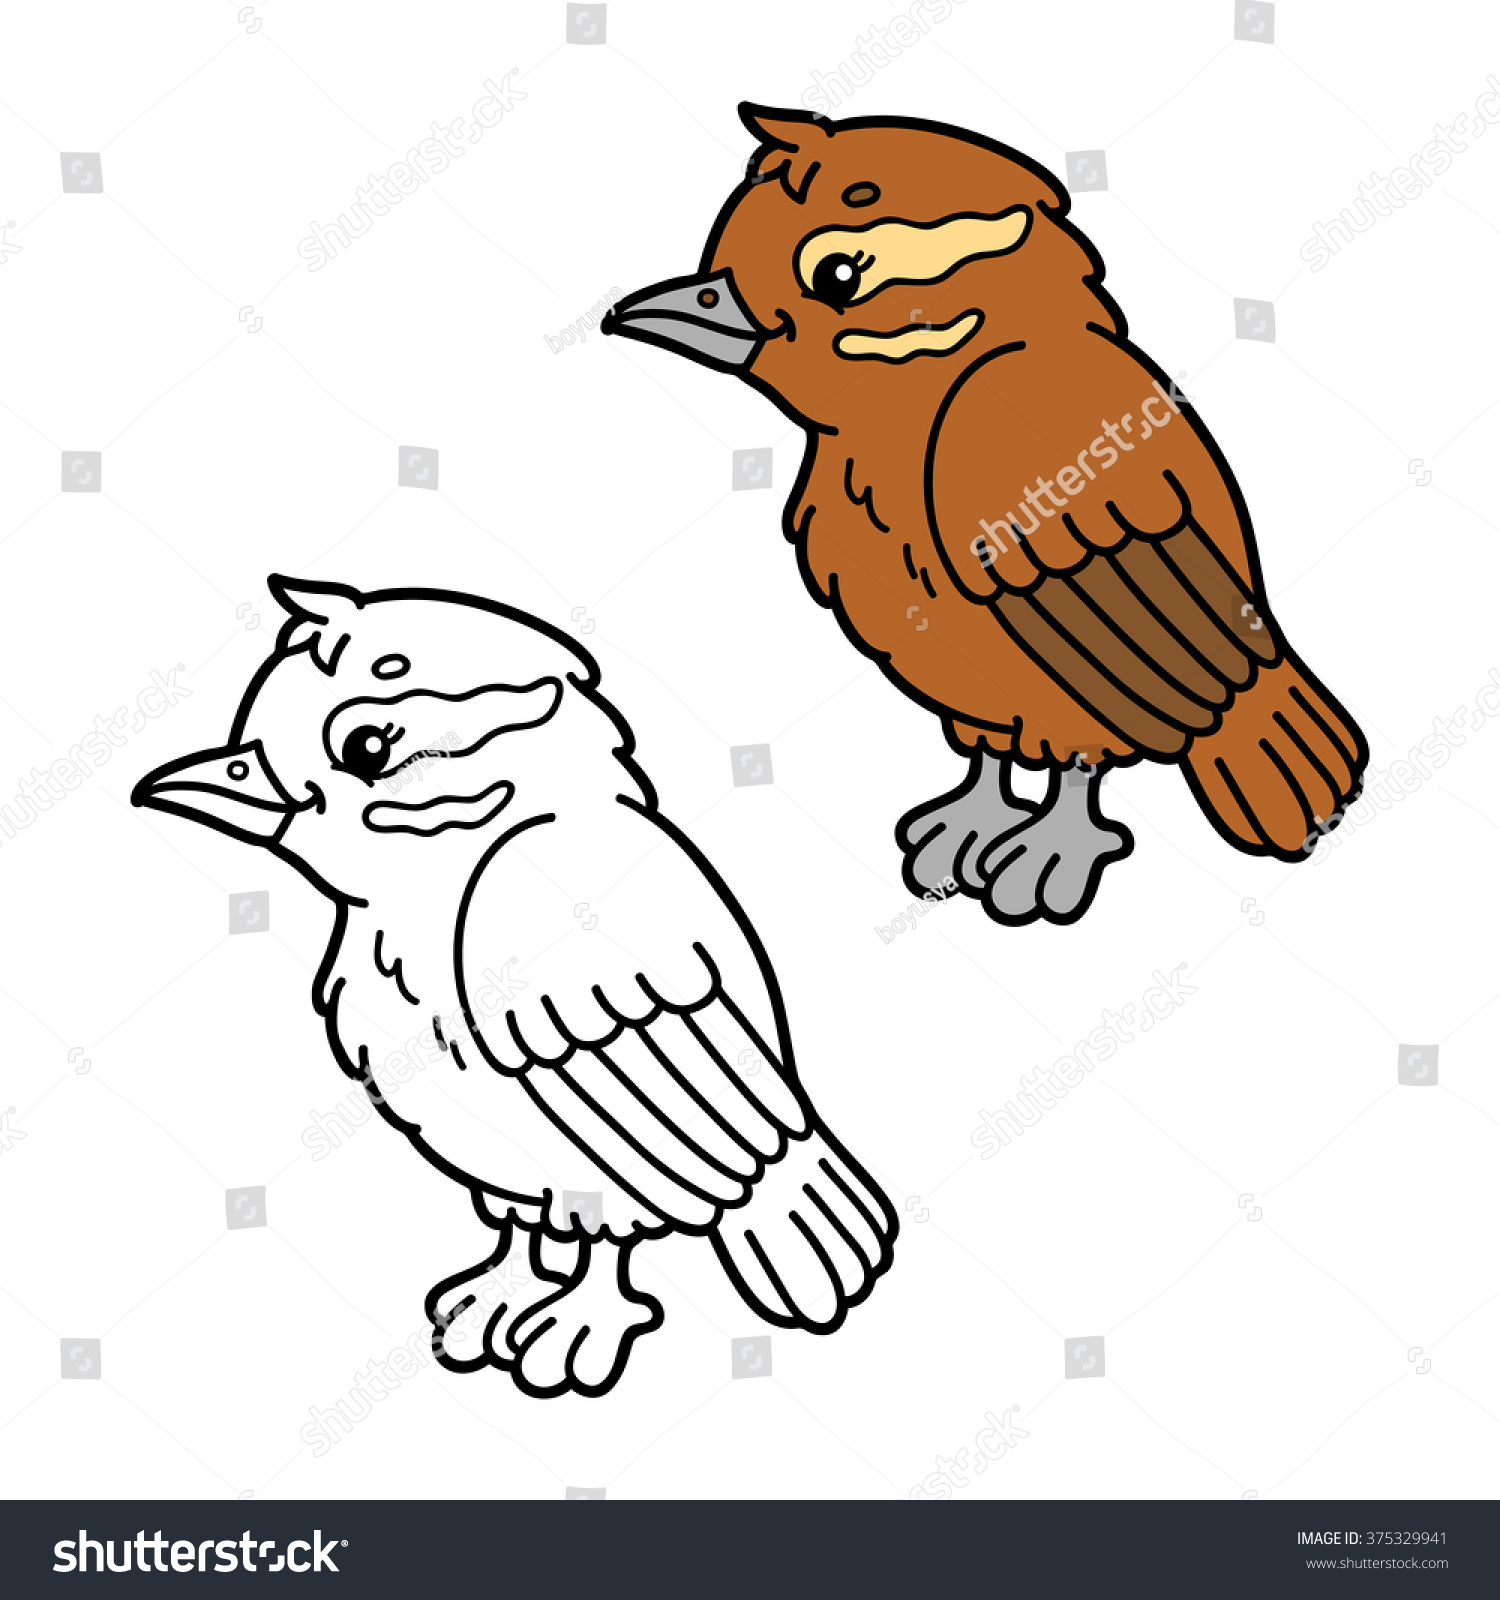 Funny Xenops Cartoon Vector Illustration Coloring Page Of Happy Bird For Children And Scrap Book Stock Photo